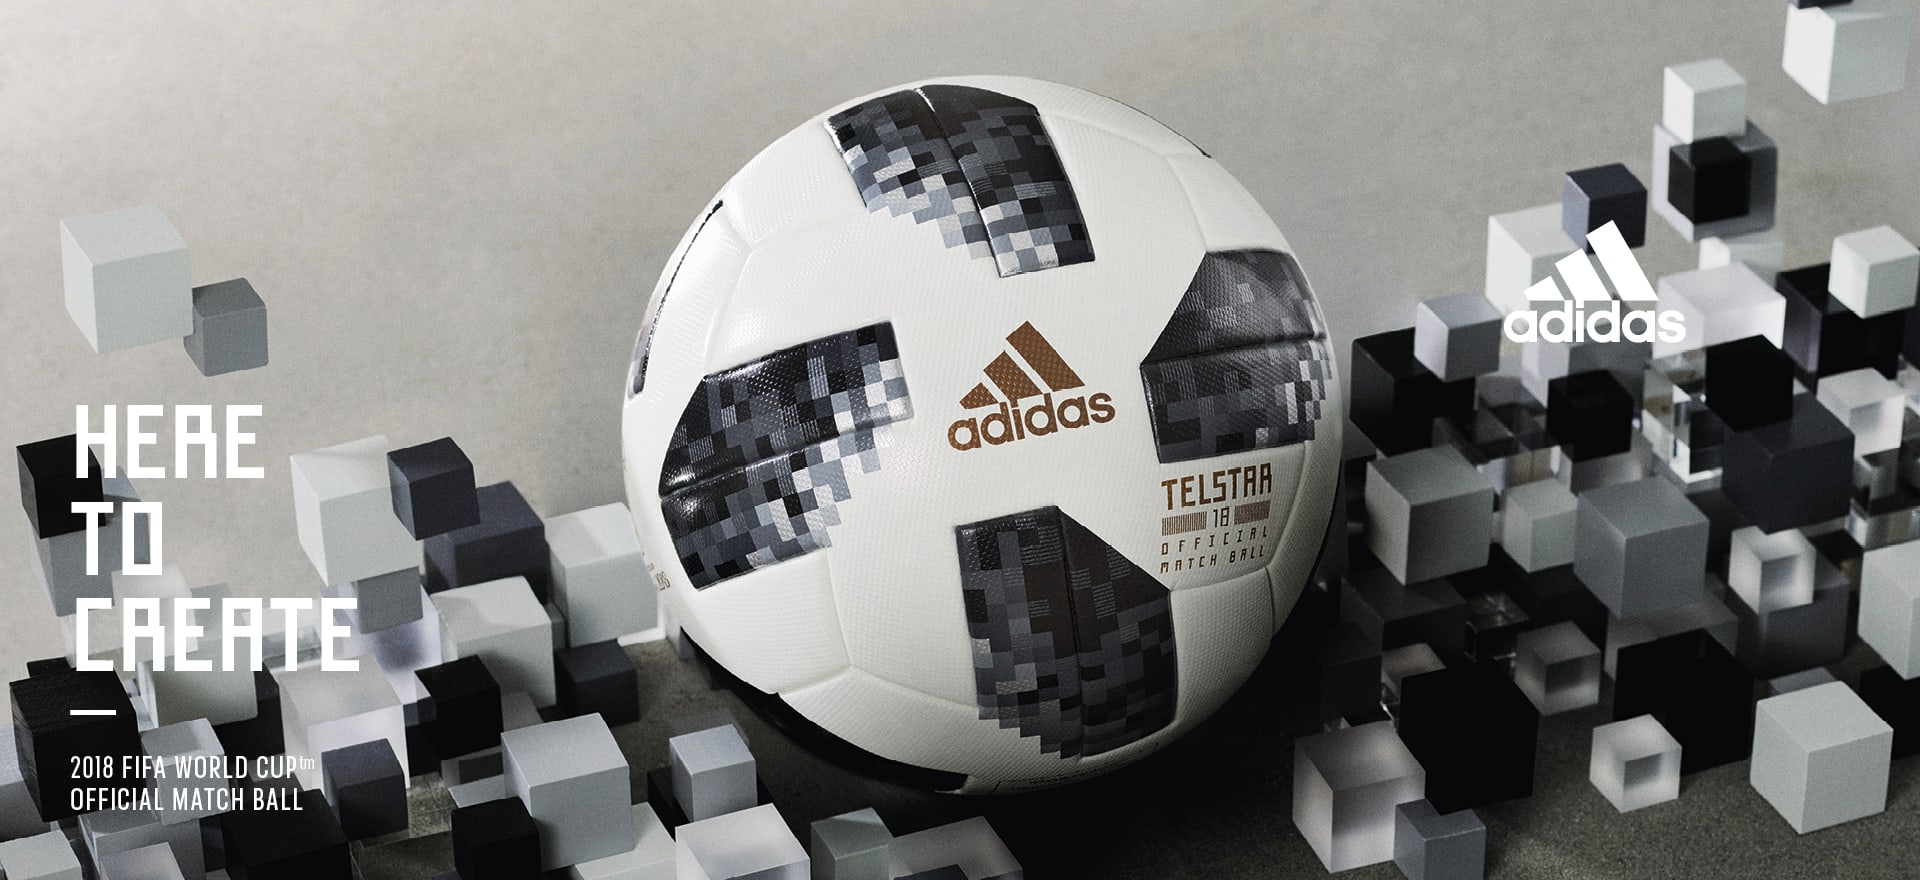 Here to create - 2018 FIFA Official Match Ball